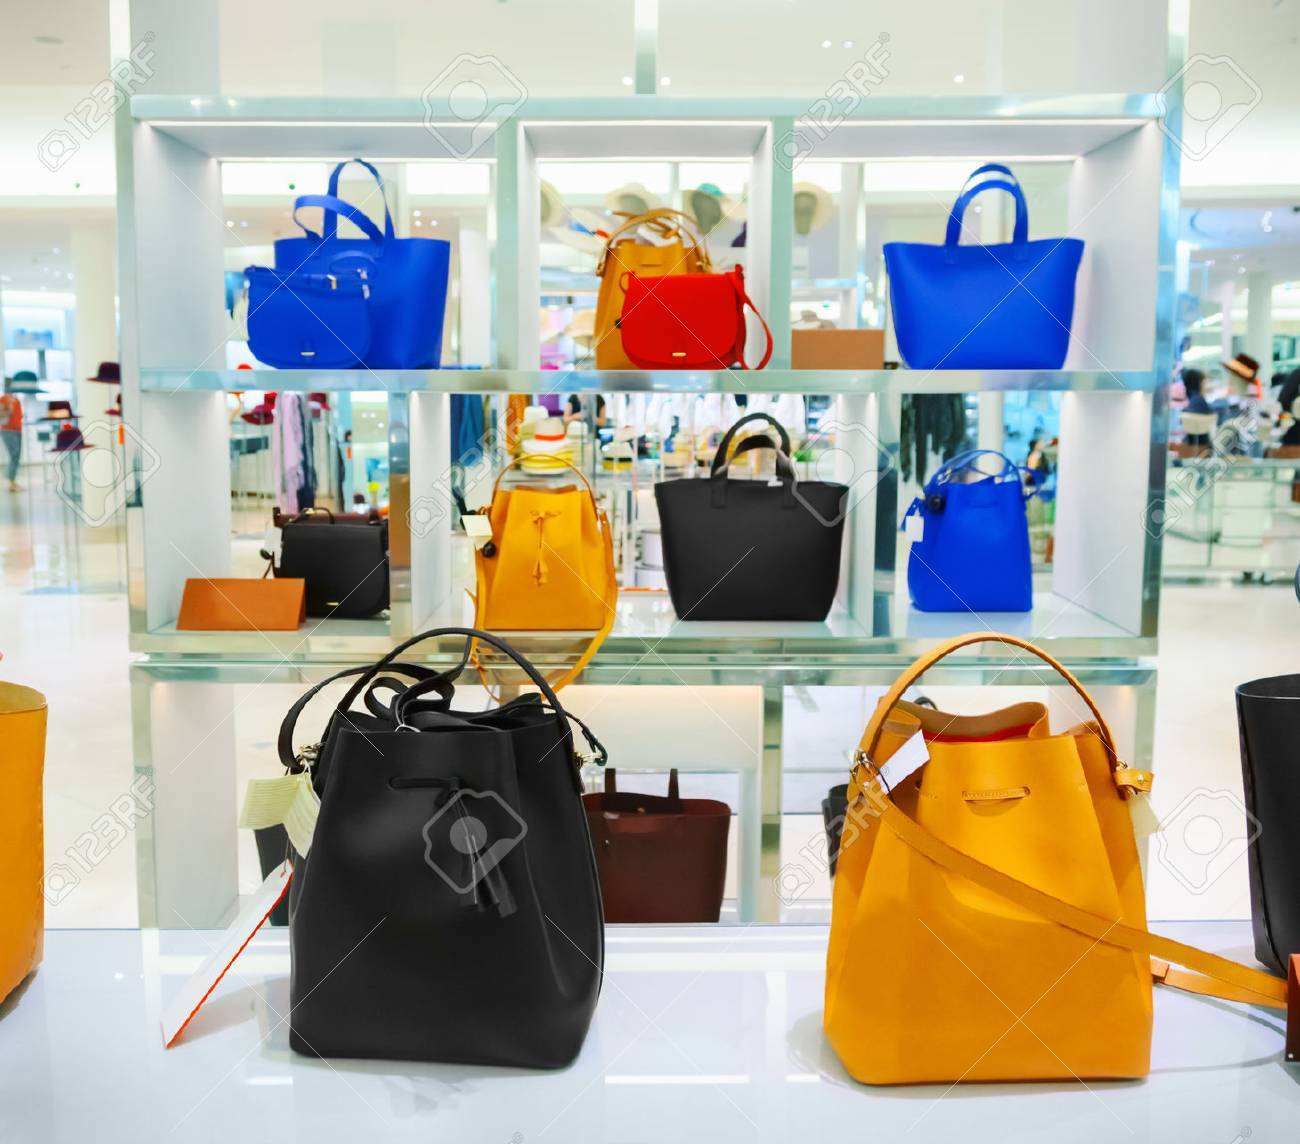 Shop window with bags and shoes - 53480935